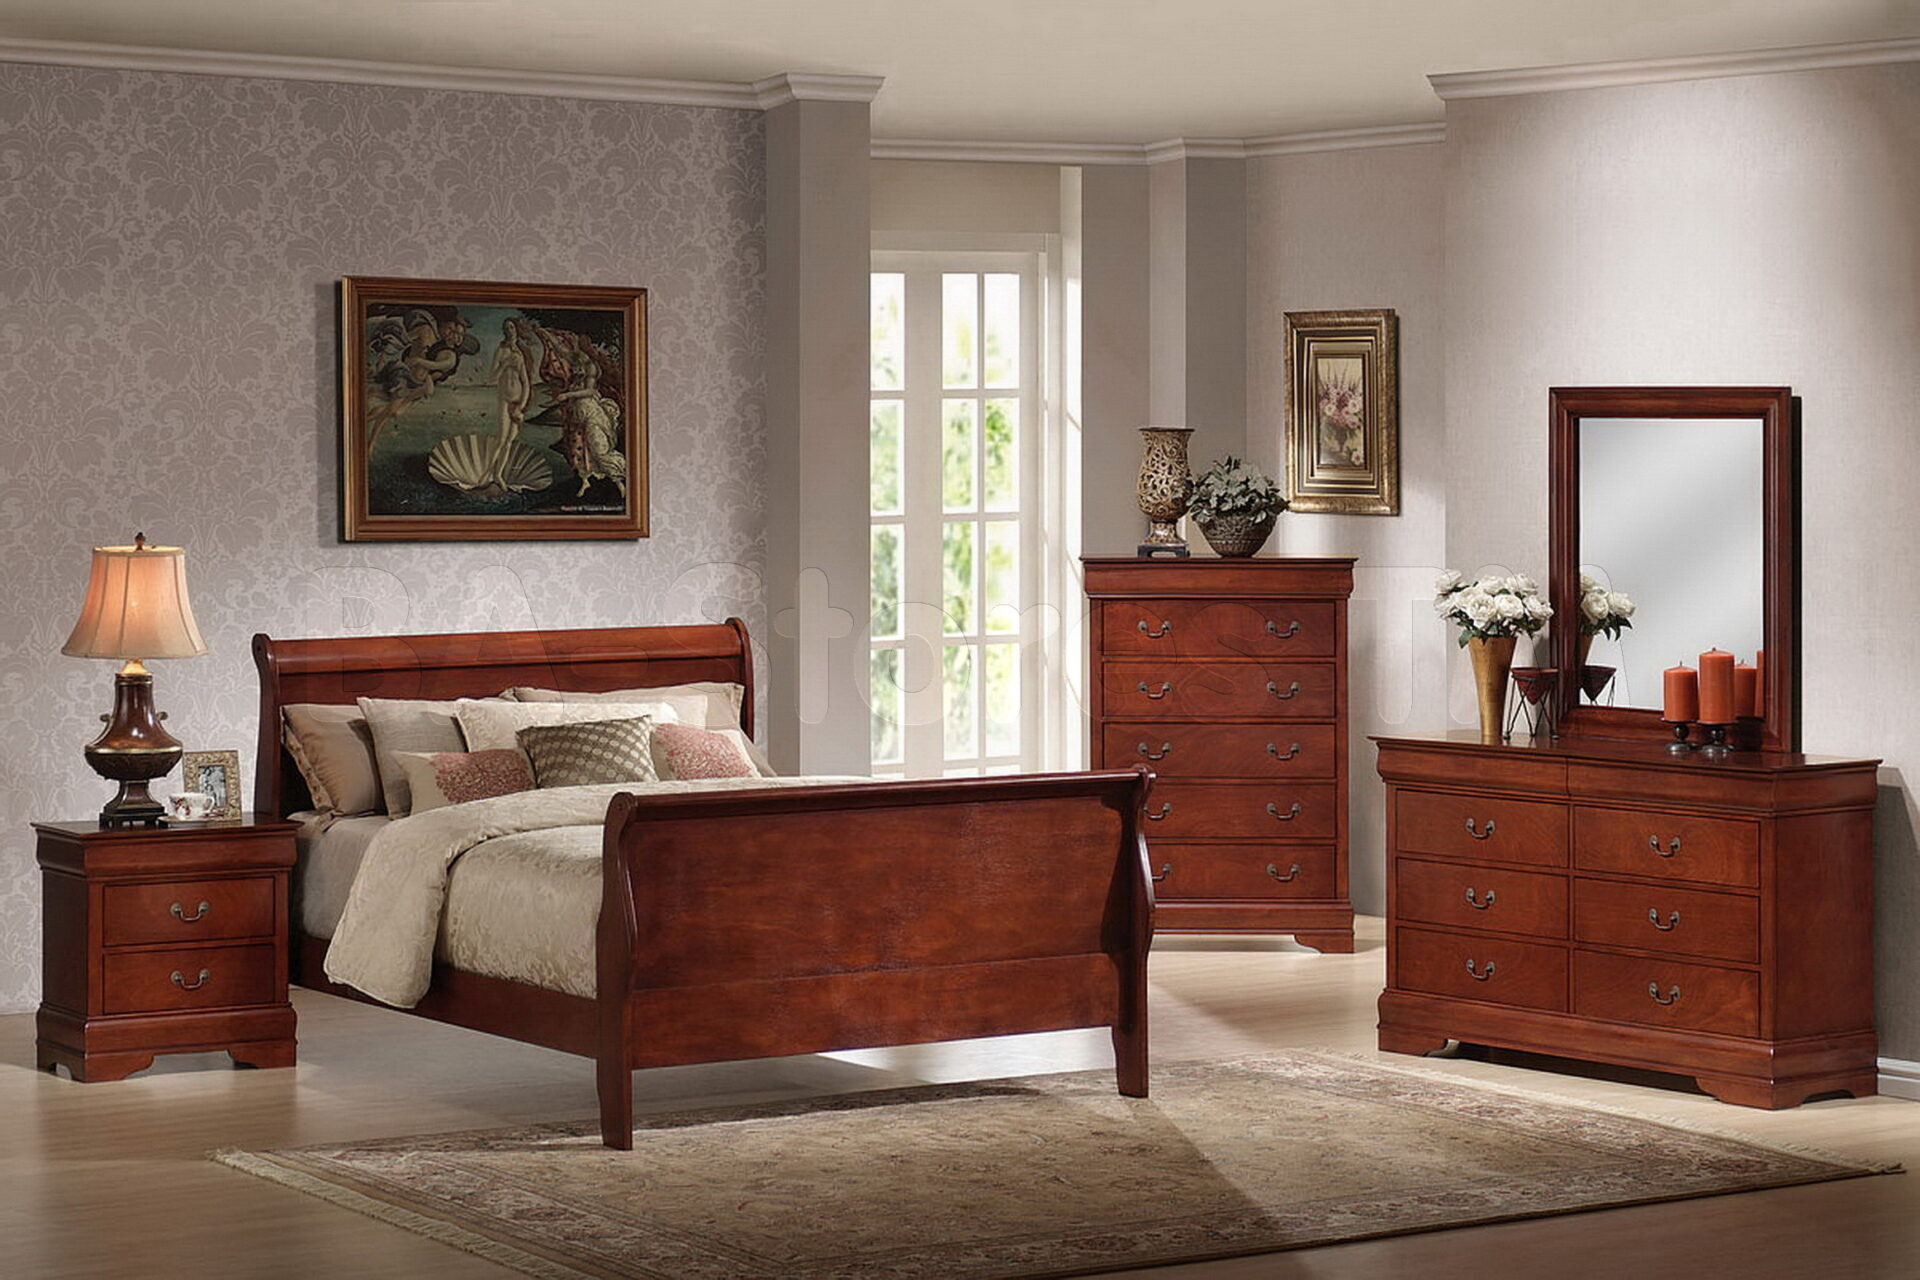 Cherry wood furniture bedroom decor ideas for Bedroom dresser decor